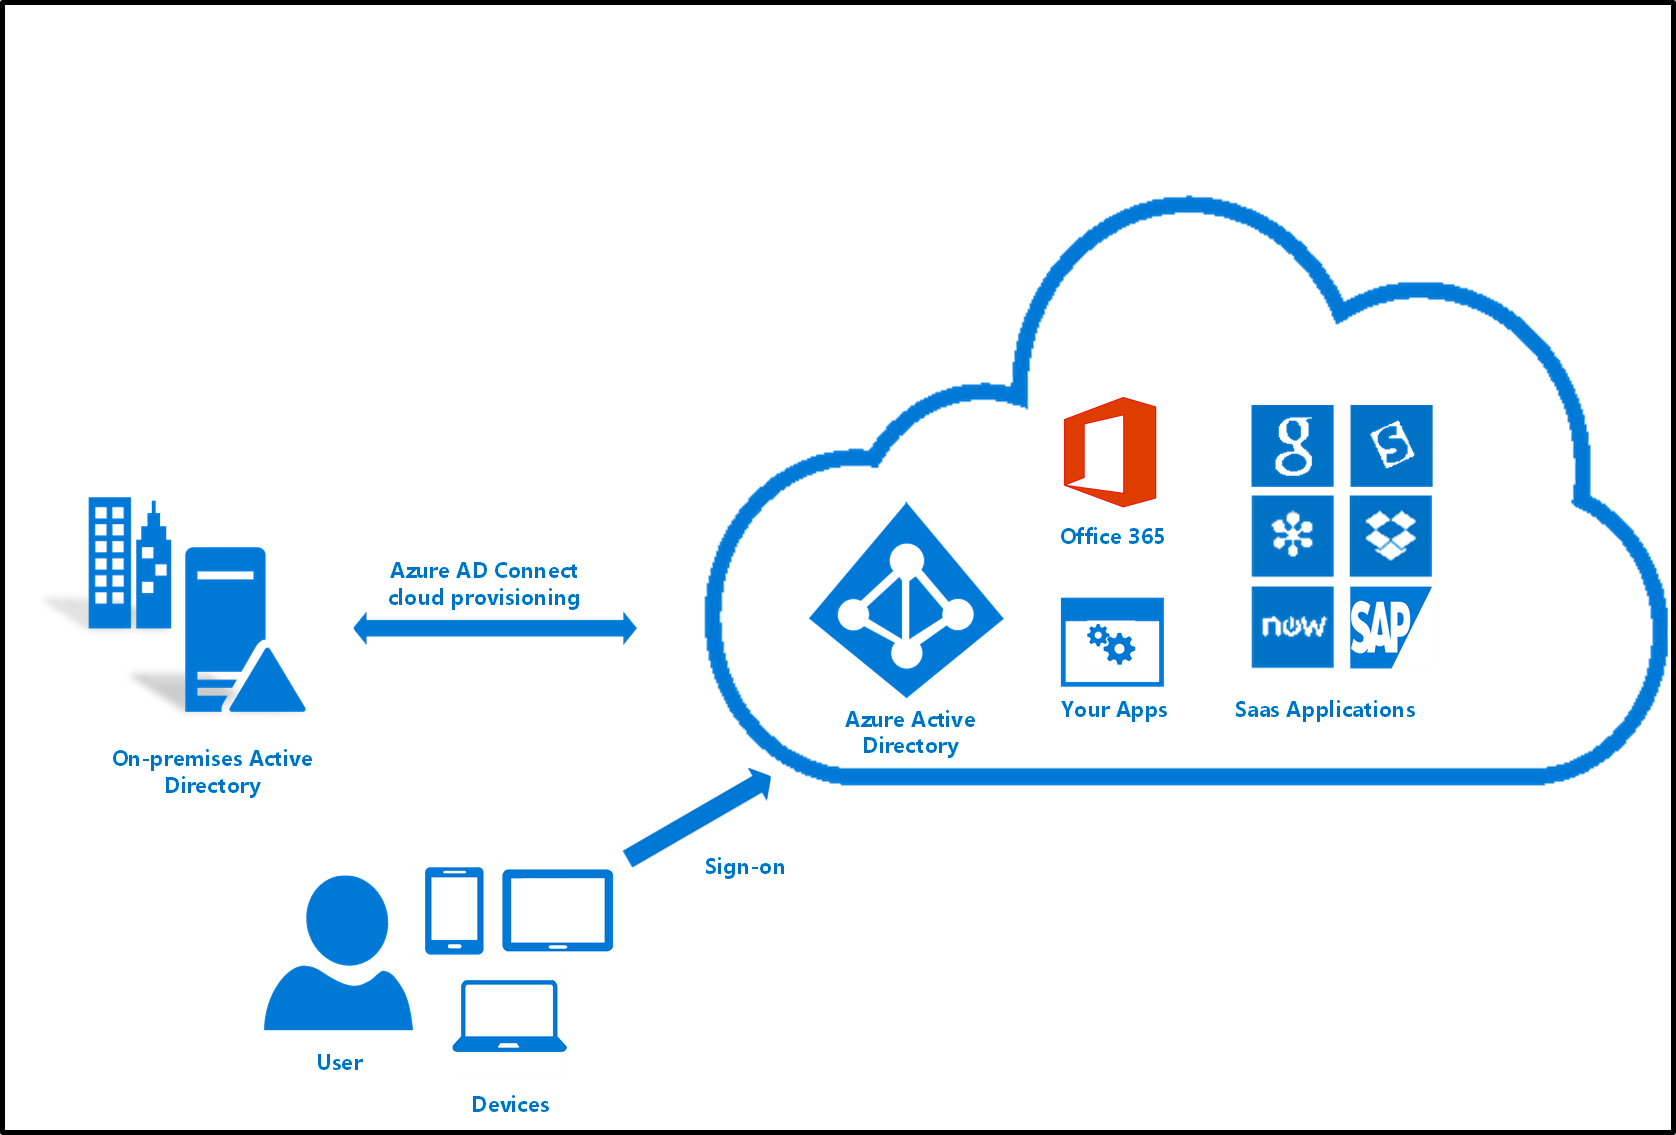 What Is Azure Ad Connect Cloud Provisioning Microsoft Docs